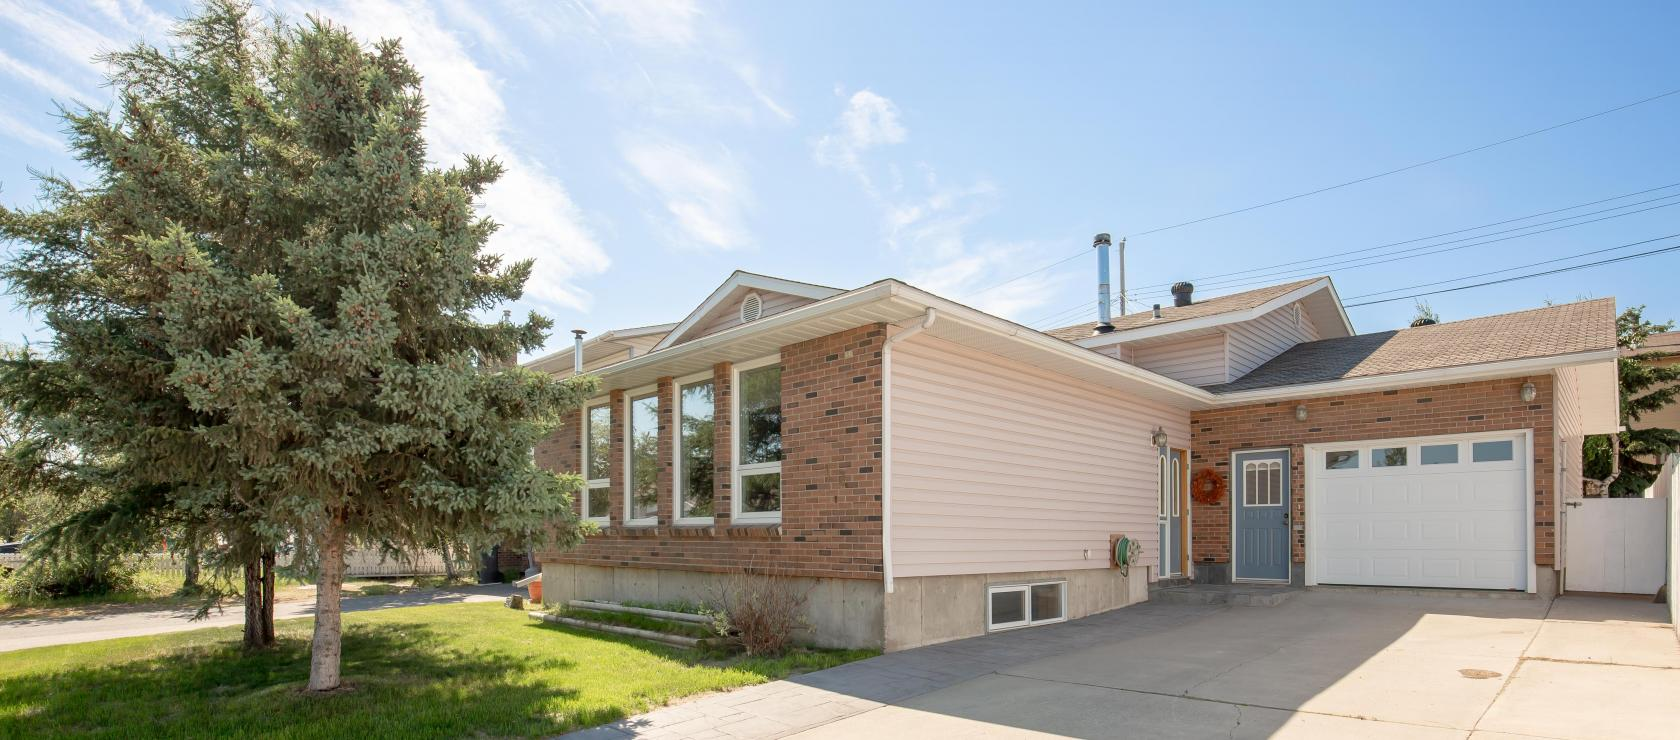 13 Bromley Drive, Frame Lake, Yellowknife 2